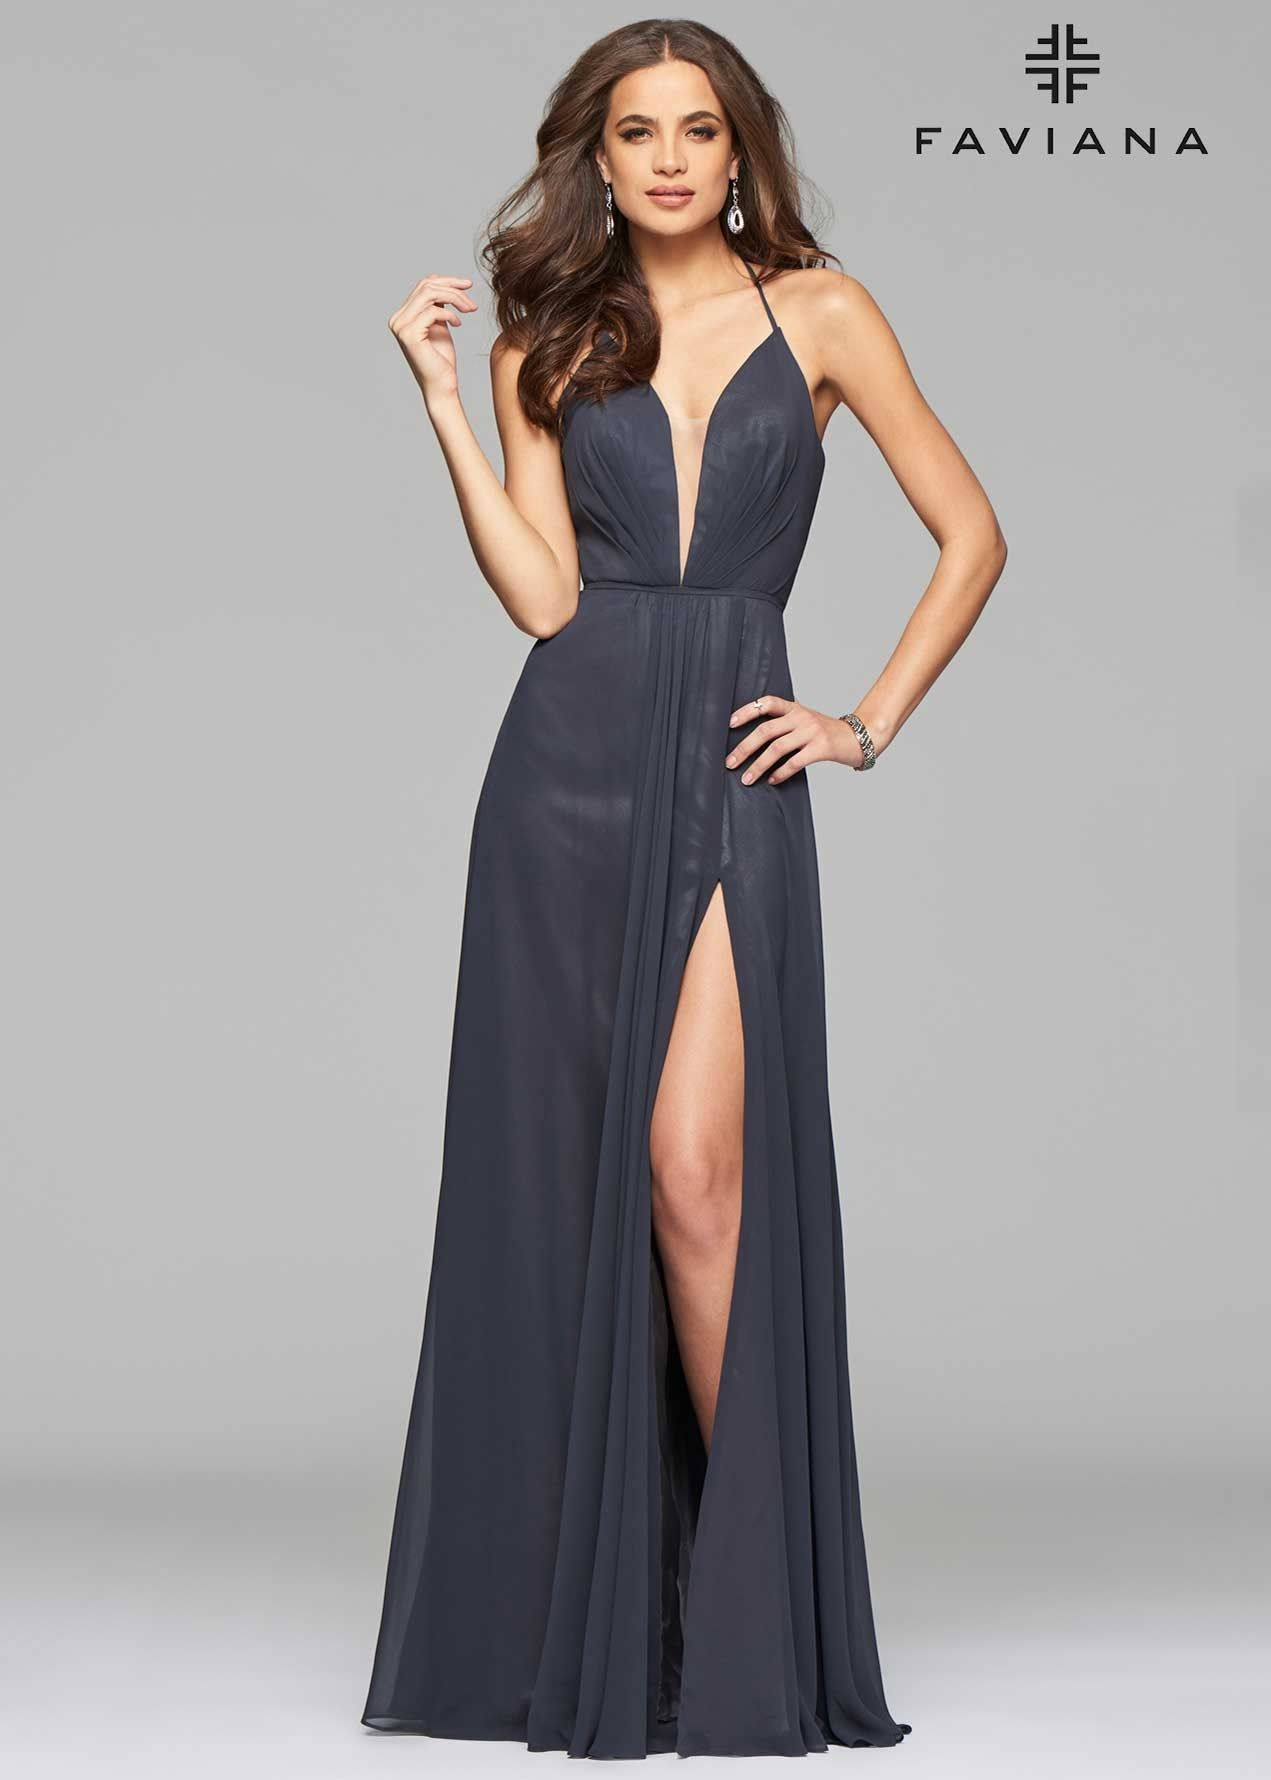 Faviana Plunge Neck Chiffon Evening Gown